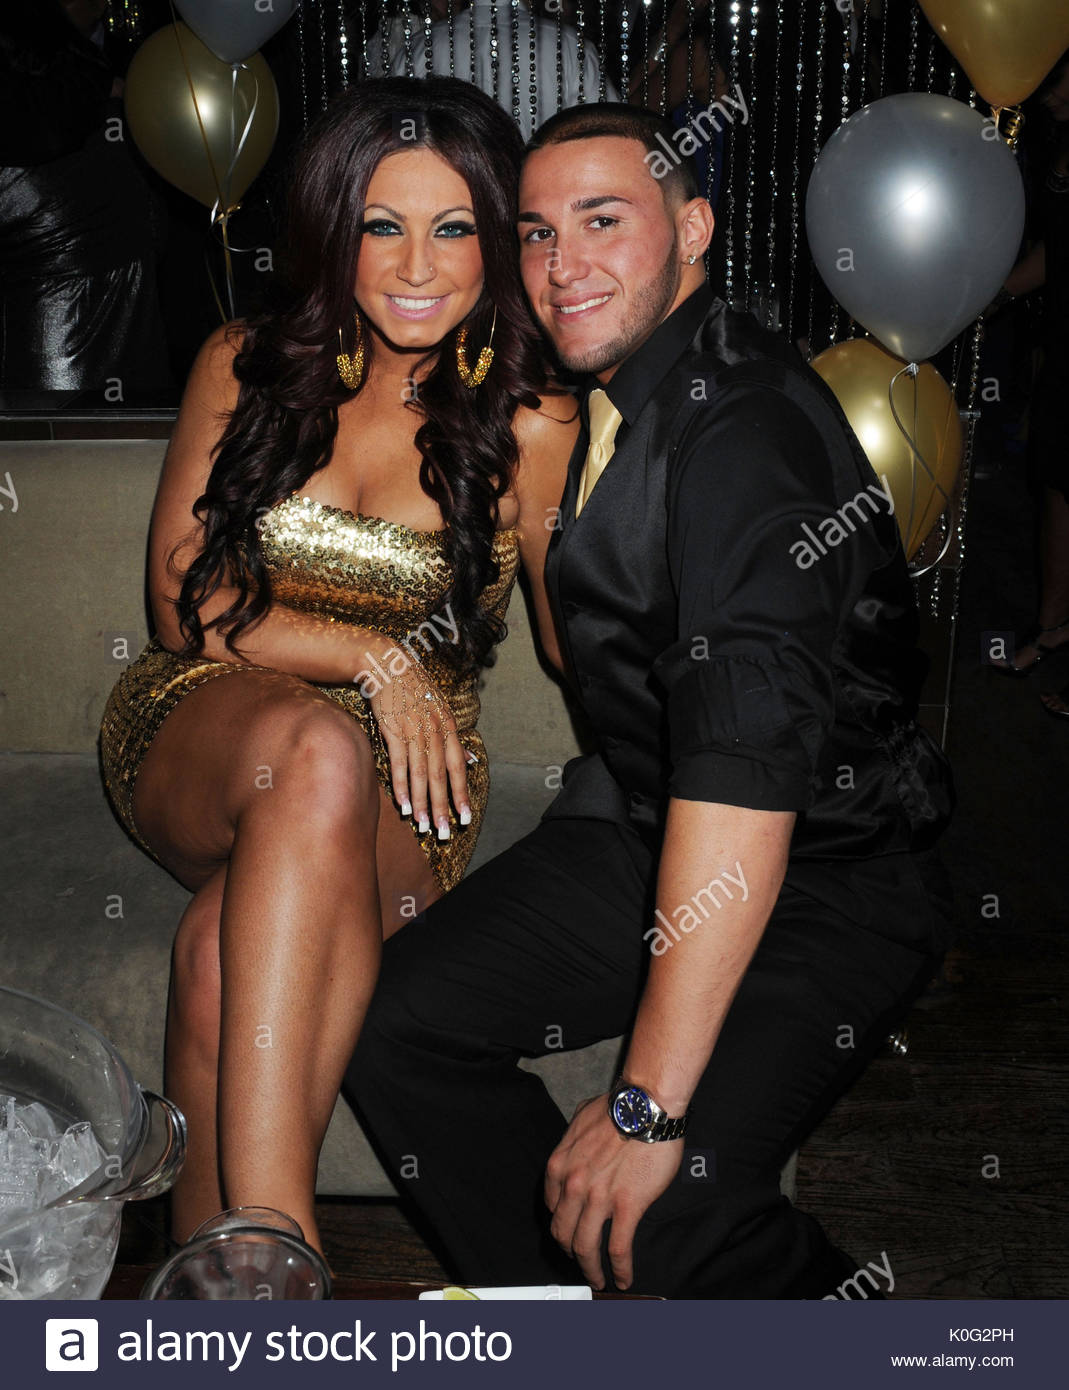 Selfie 2019 Tracy Dimarco naked photo 2017